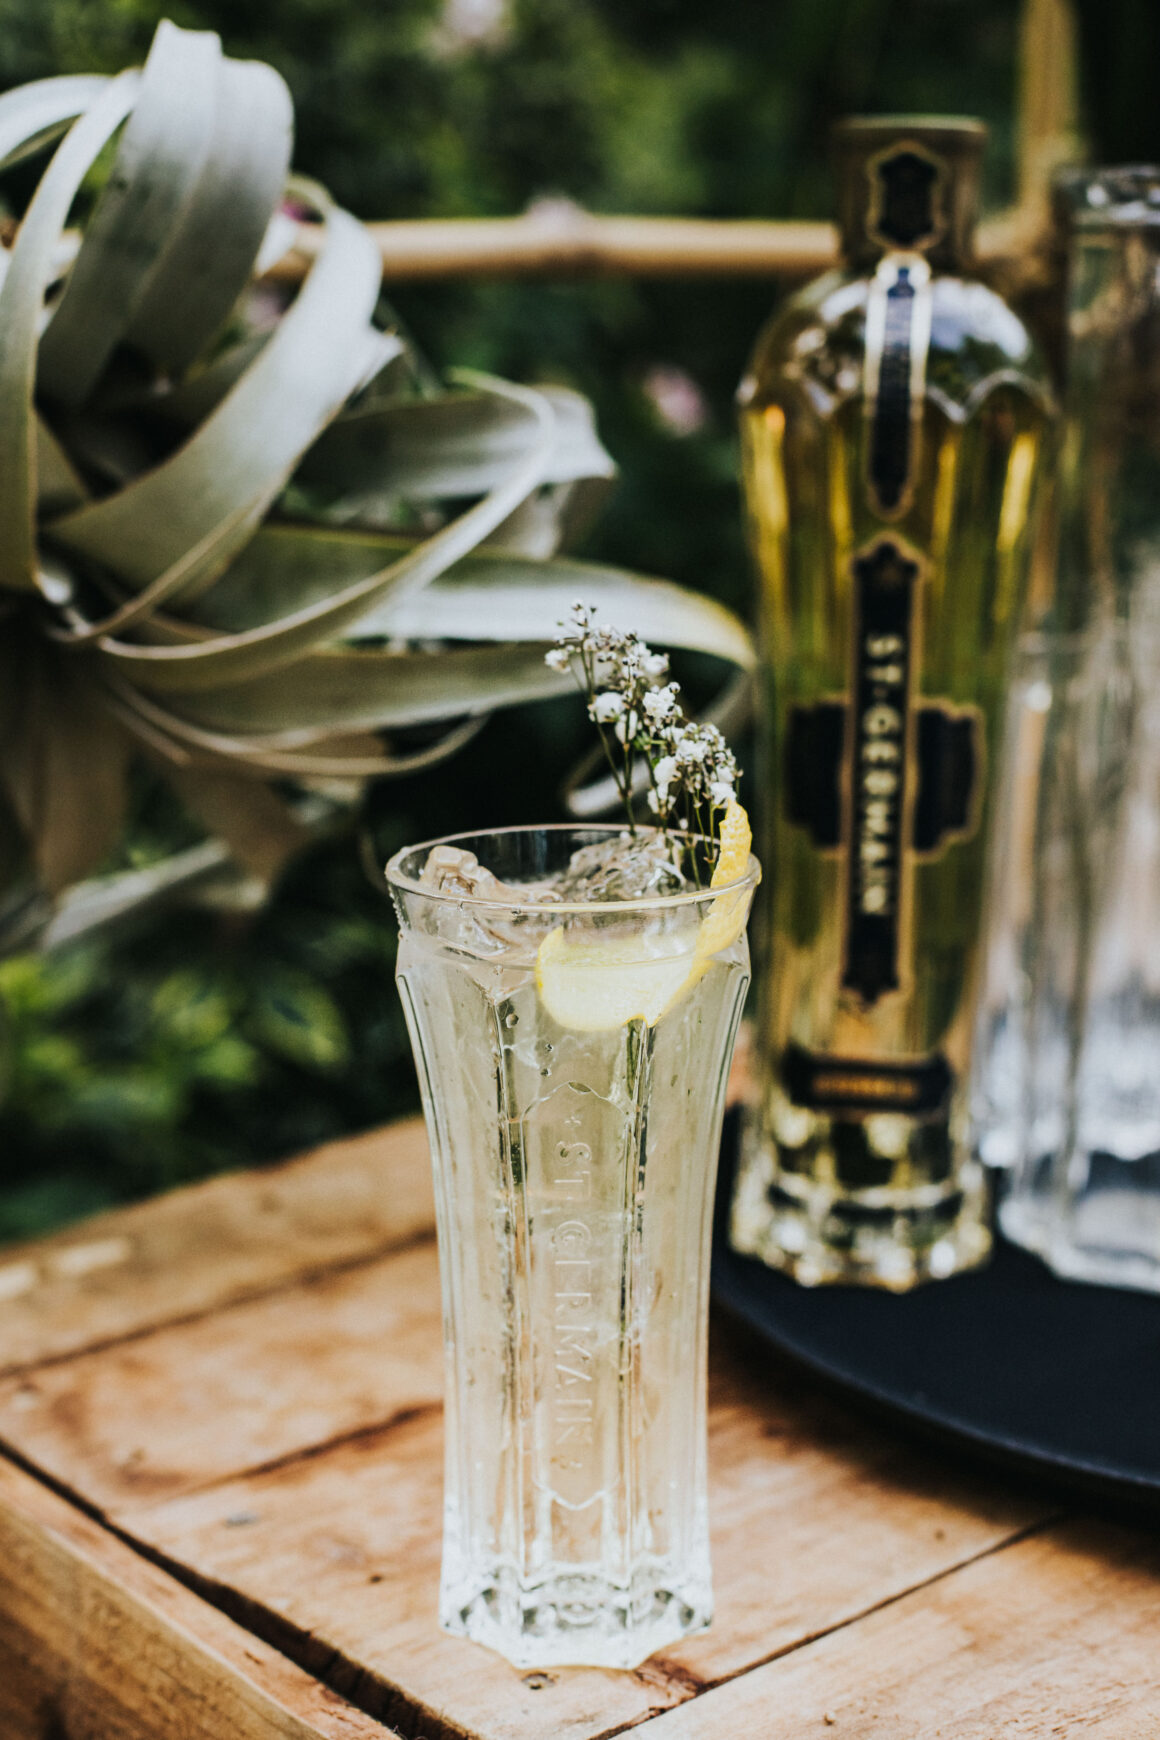 5 Reasons to Cheers Summer 2021 with Bacardi - SPRITZ